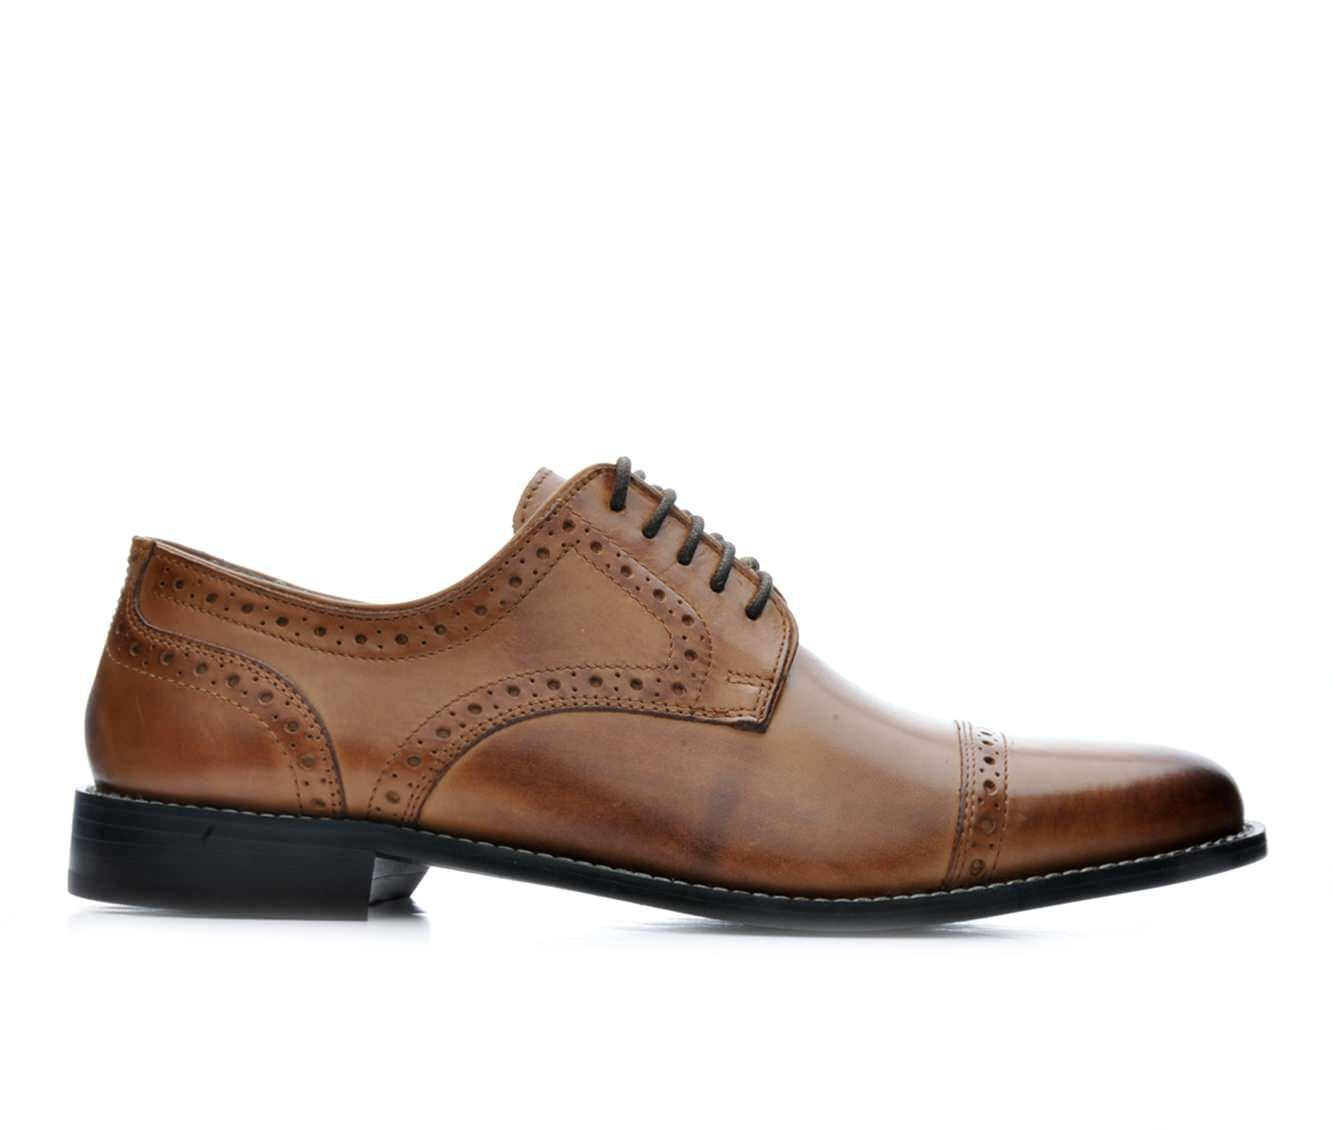 To acquire Bush nunn dress shoes picture trends